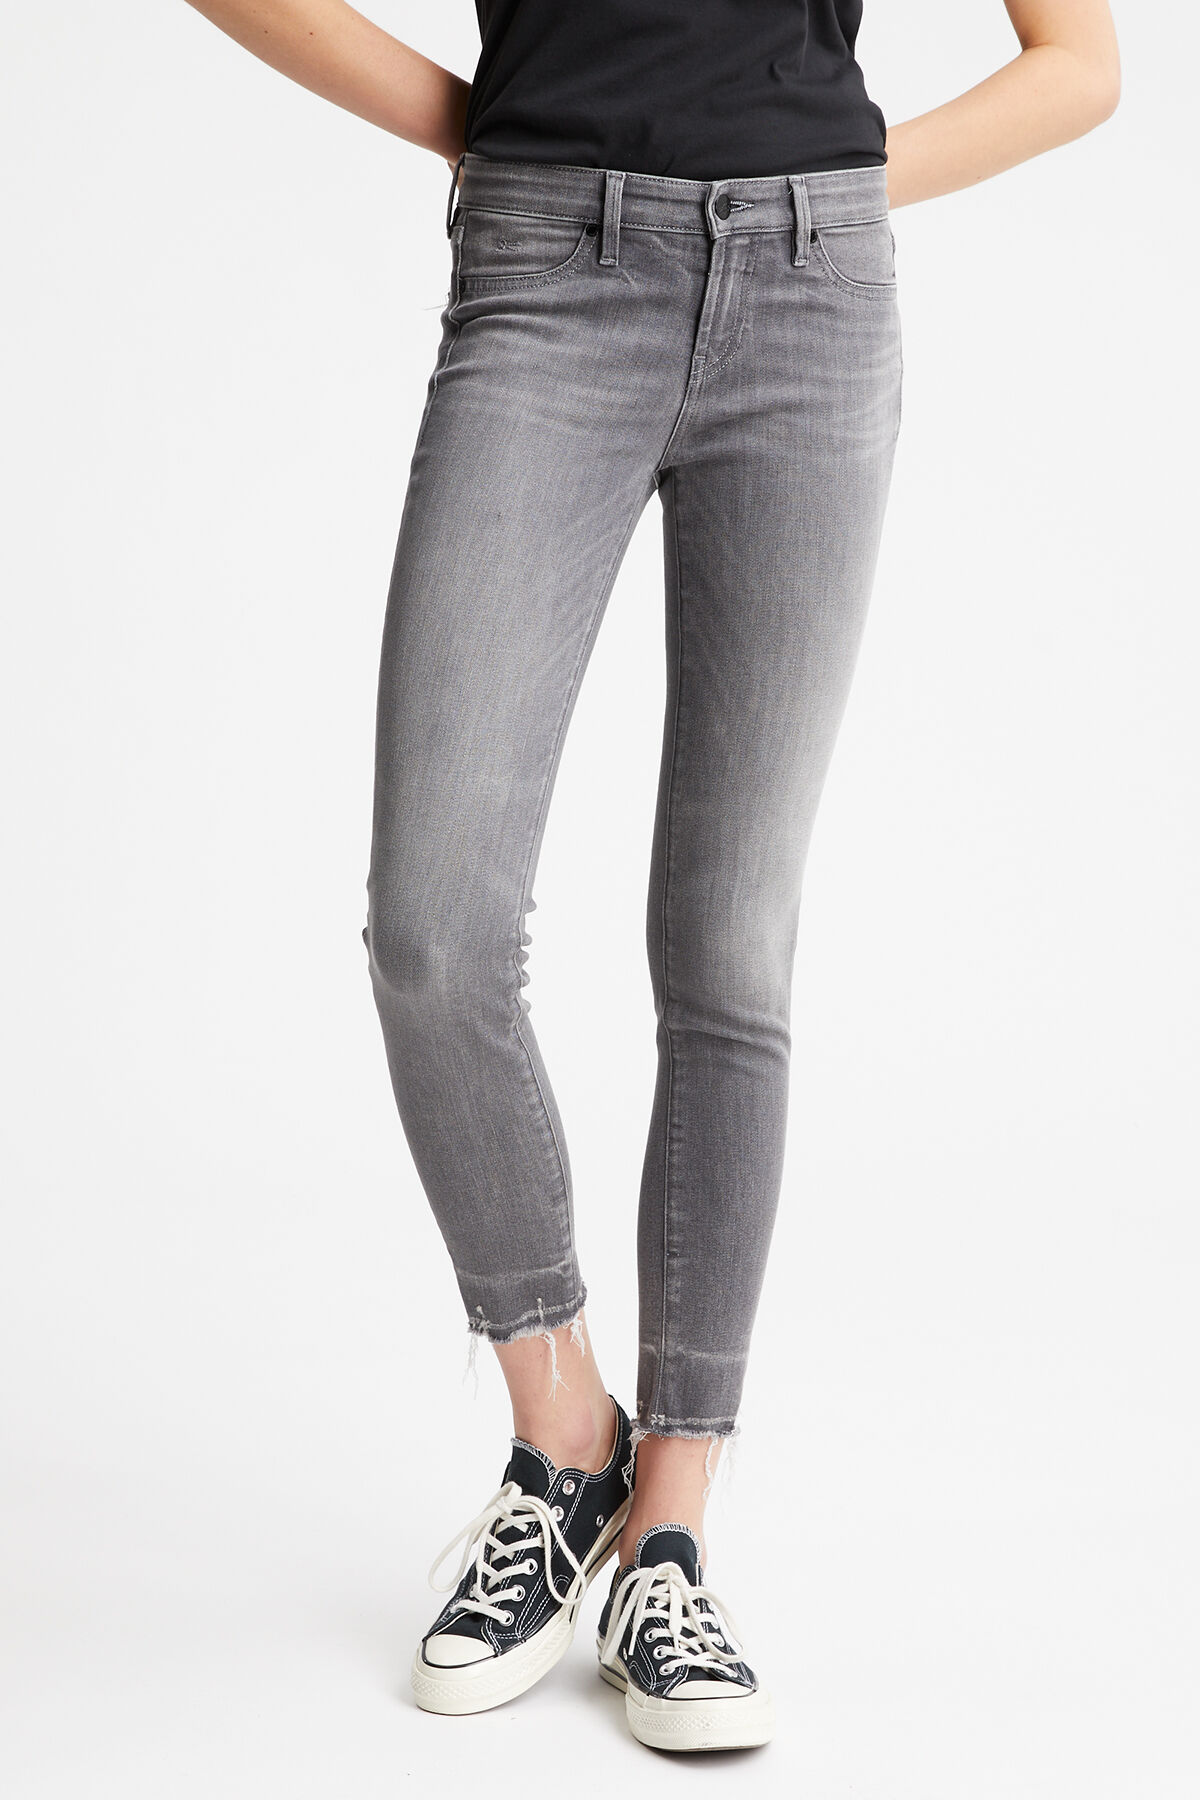 SPRAY Rip & Repair Grey Denim - Mid-rise, Tight Fit